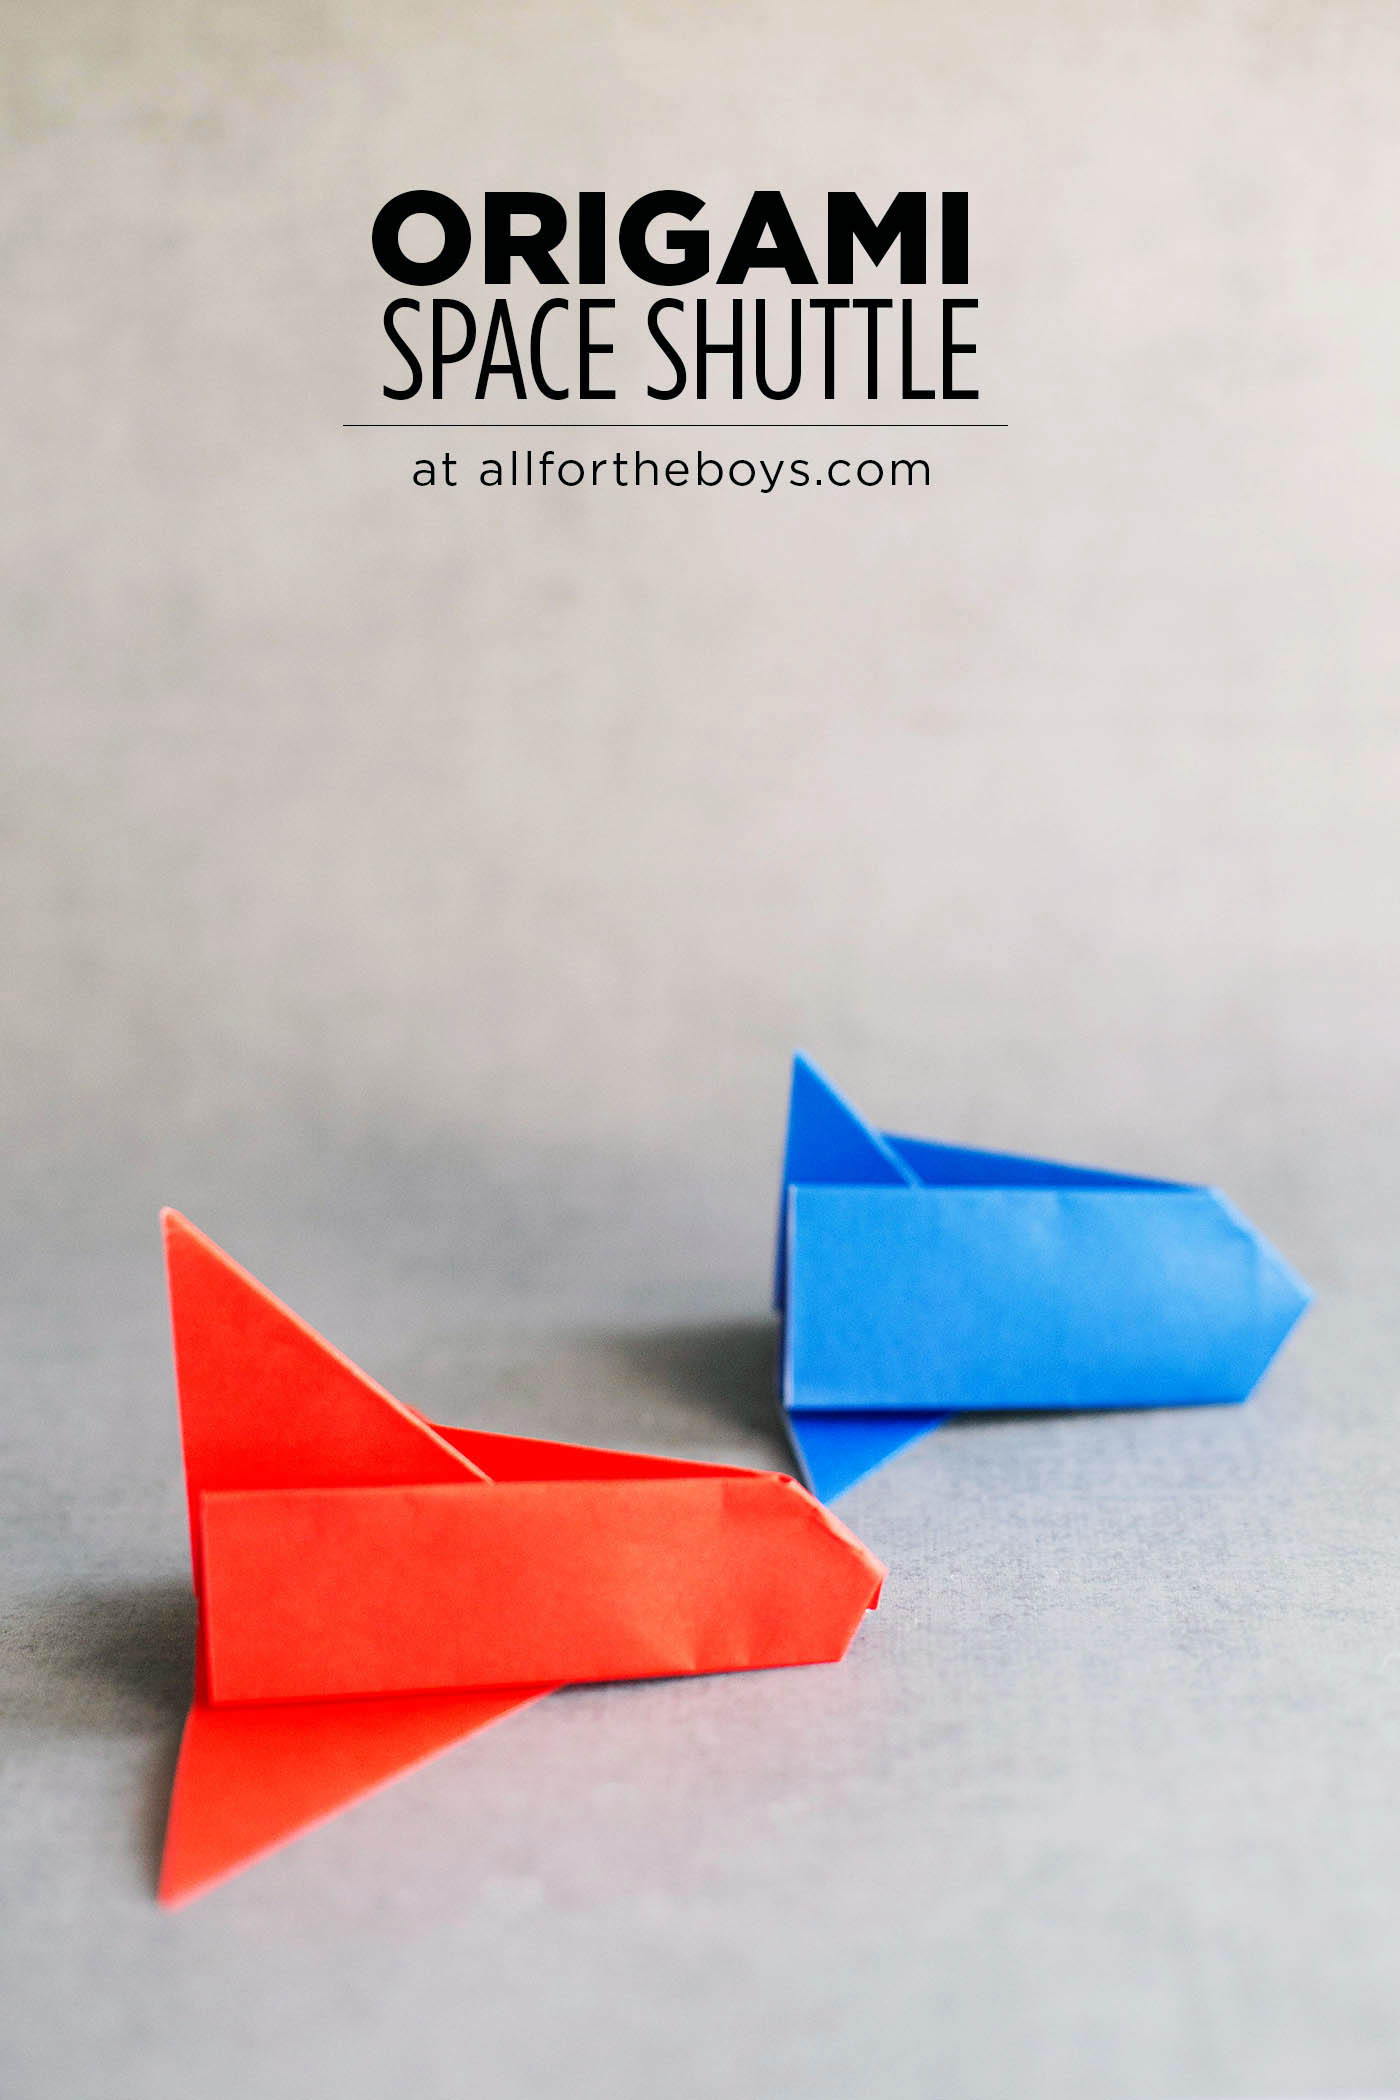 Origami space shuttle